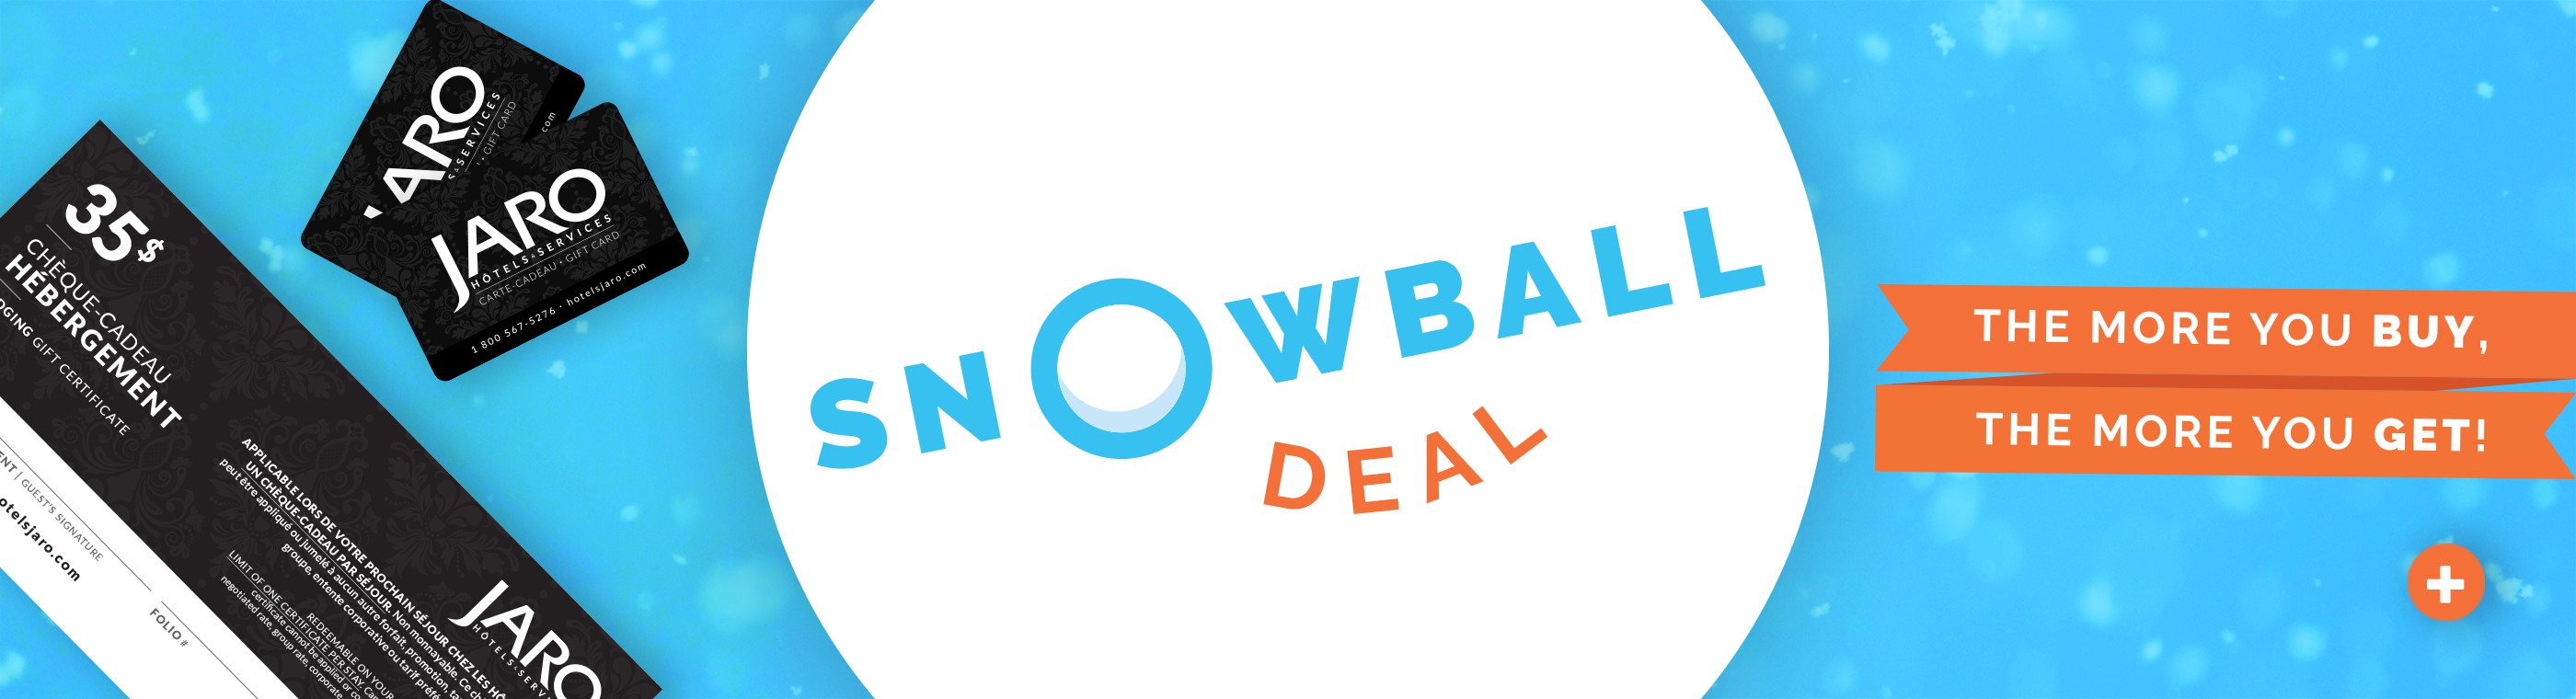 snowball-deal-gift-cards-gift-packages-jaro-hotels-quebec-city